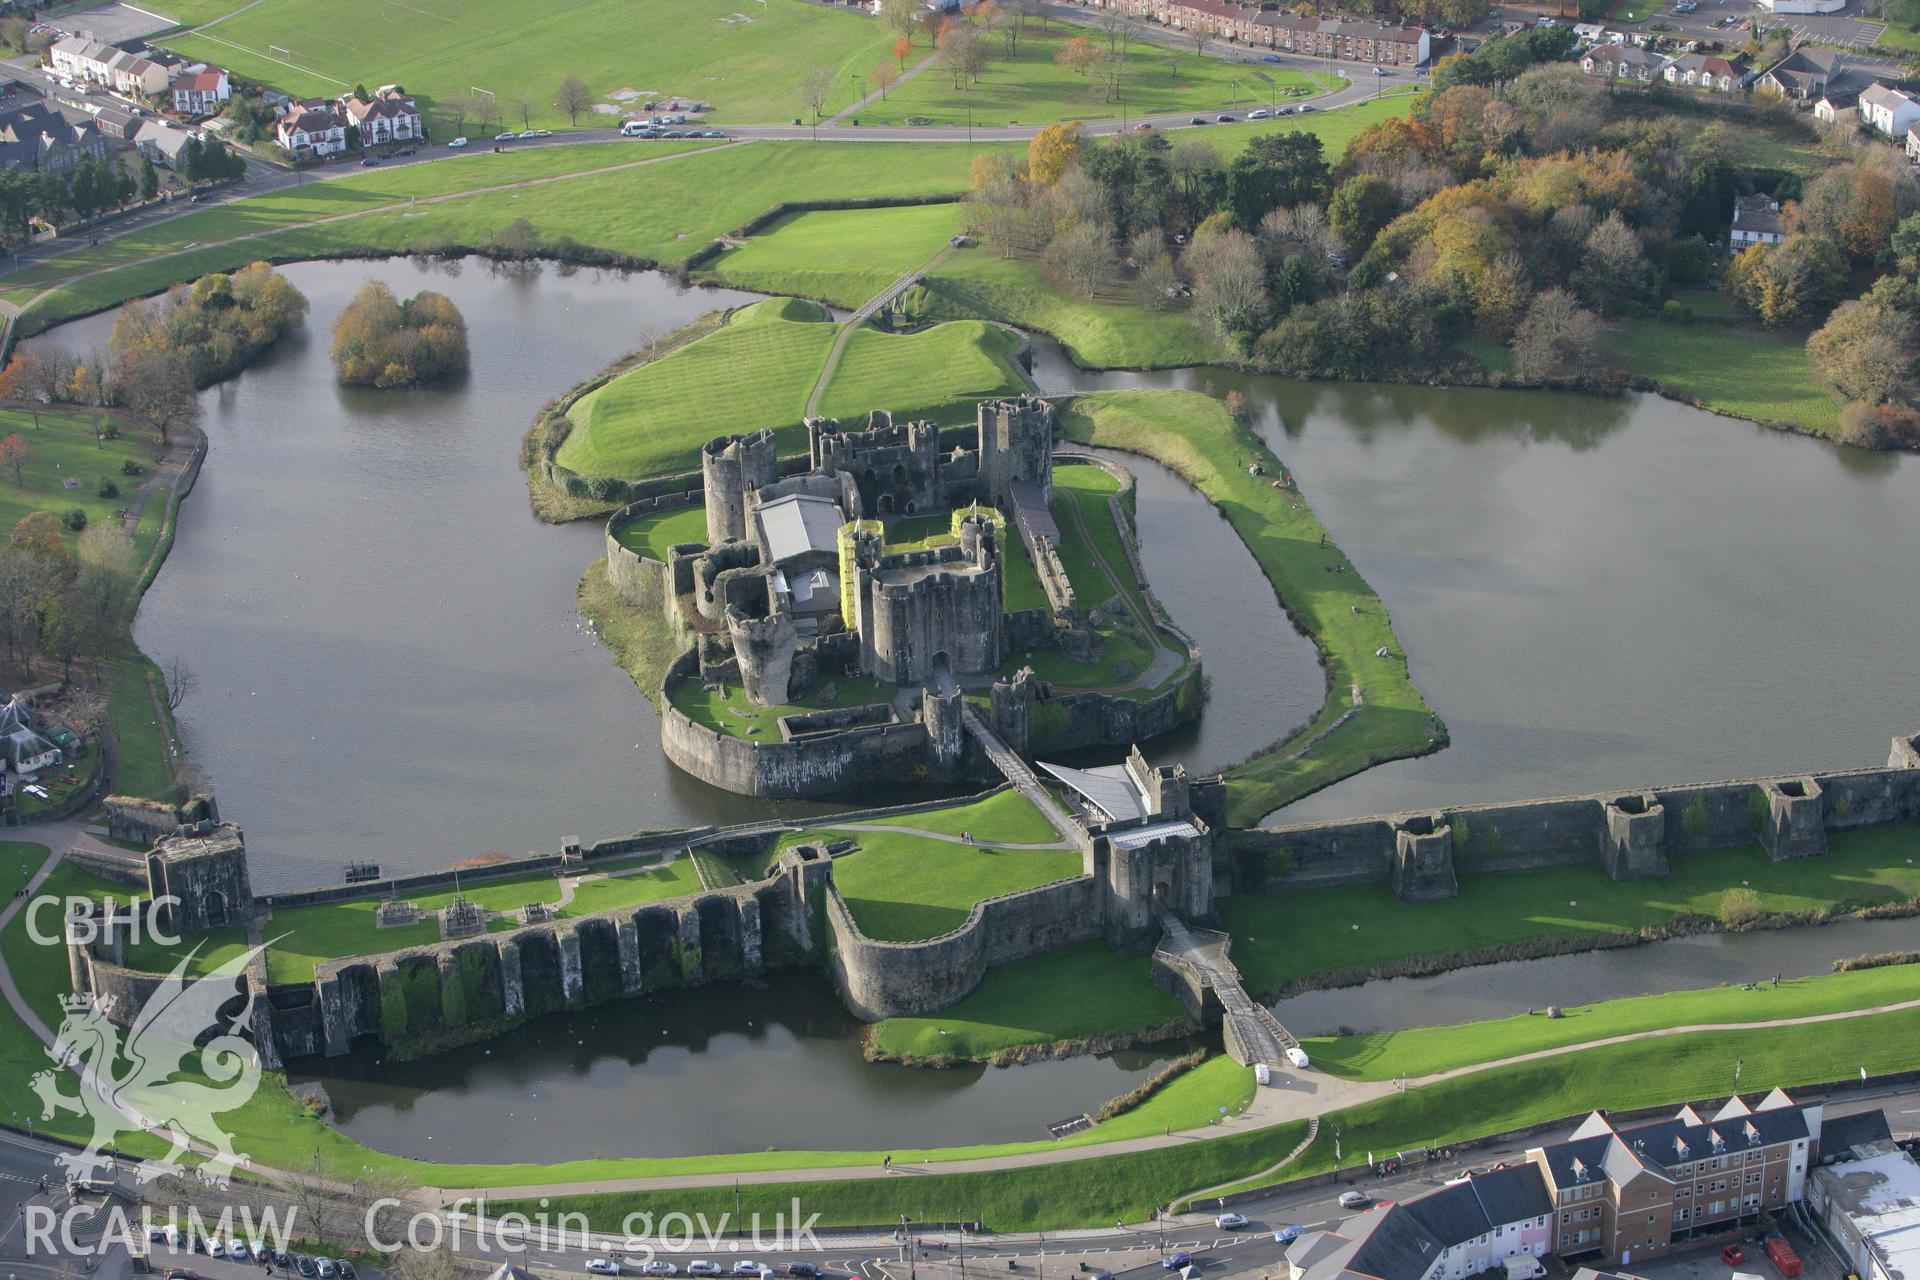 RCAHMW colour oblique photograph of Caerphilly Castle. Taken by Toby Driver on 12/11/2008.